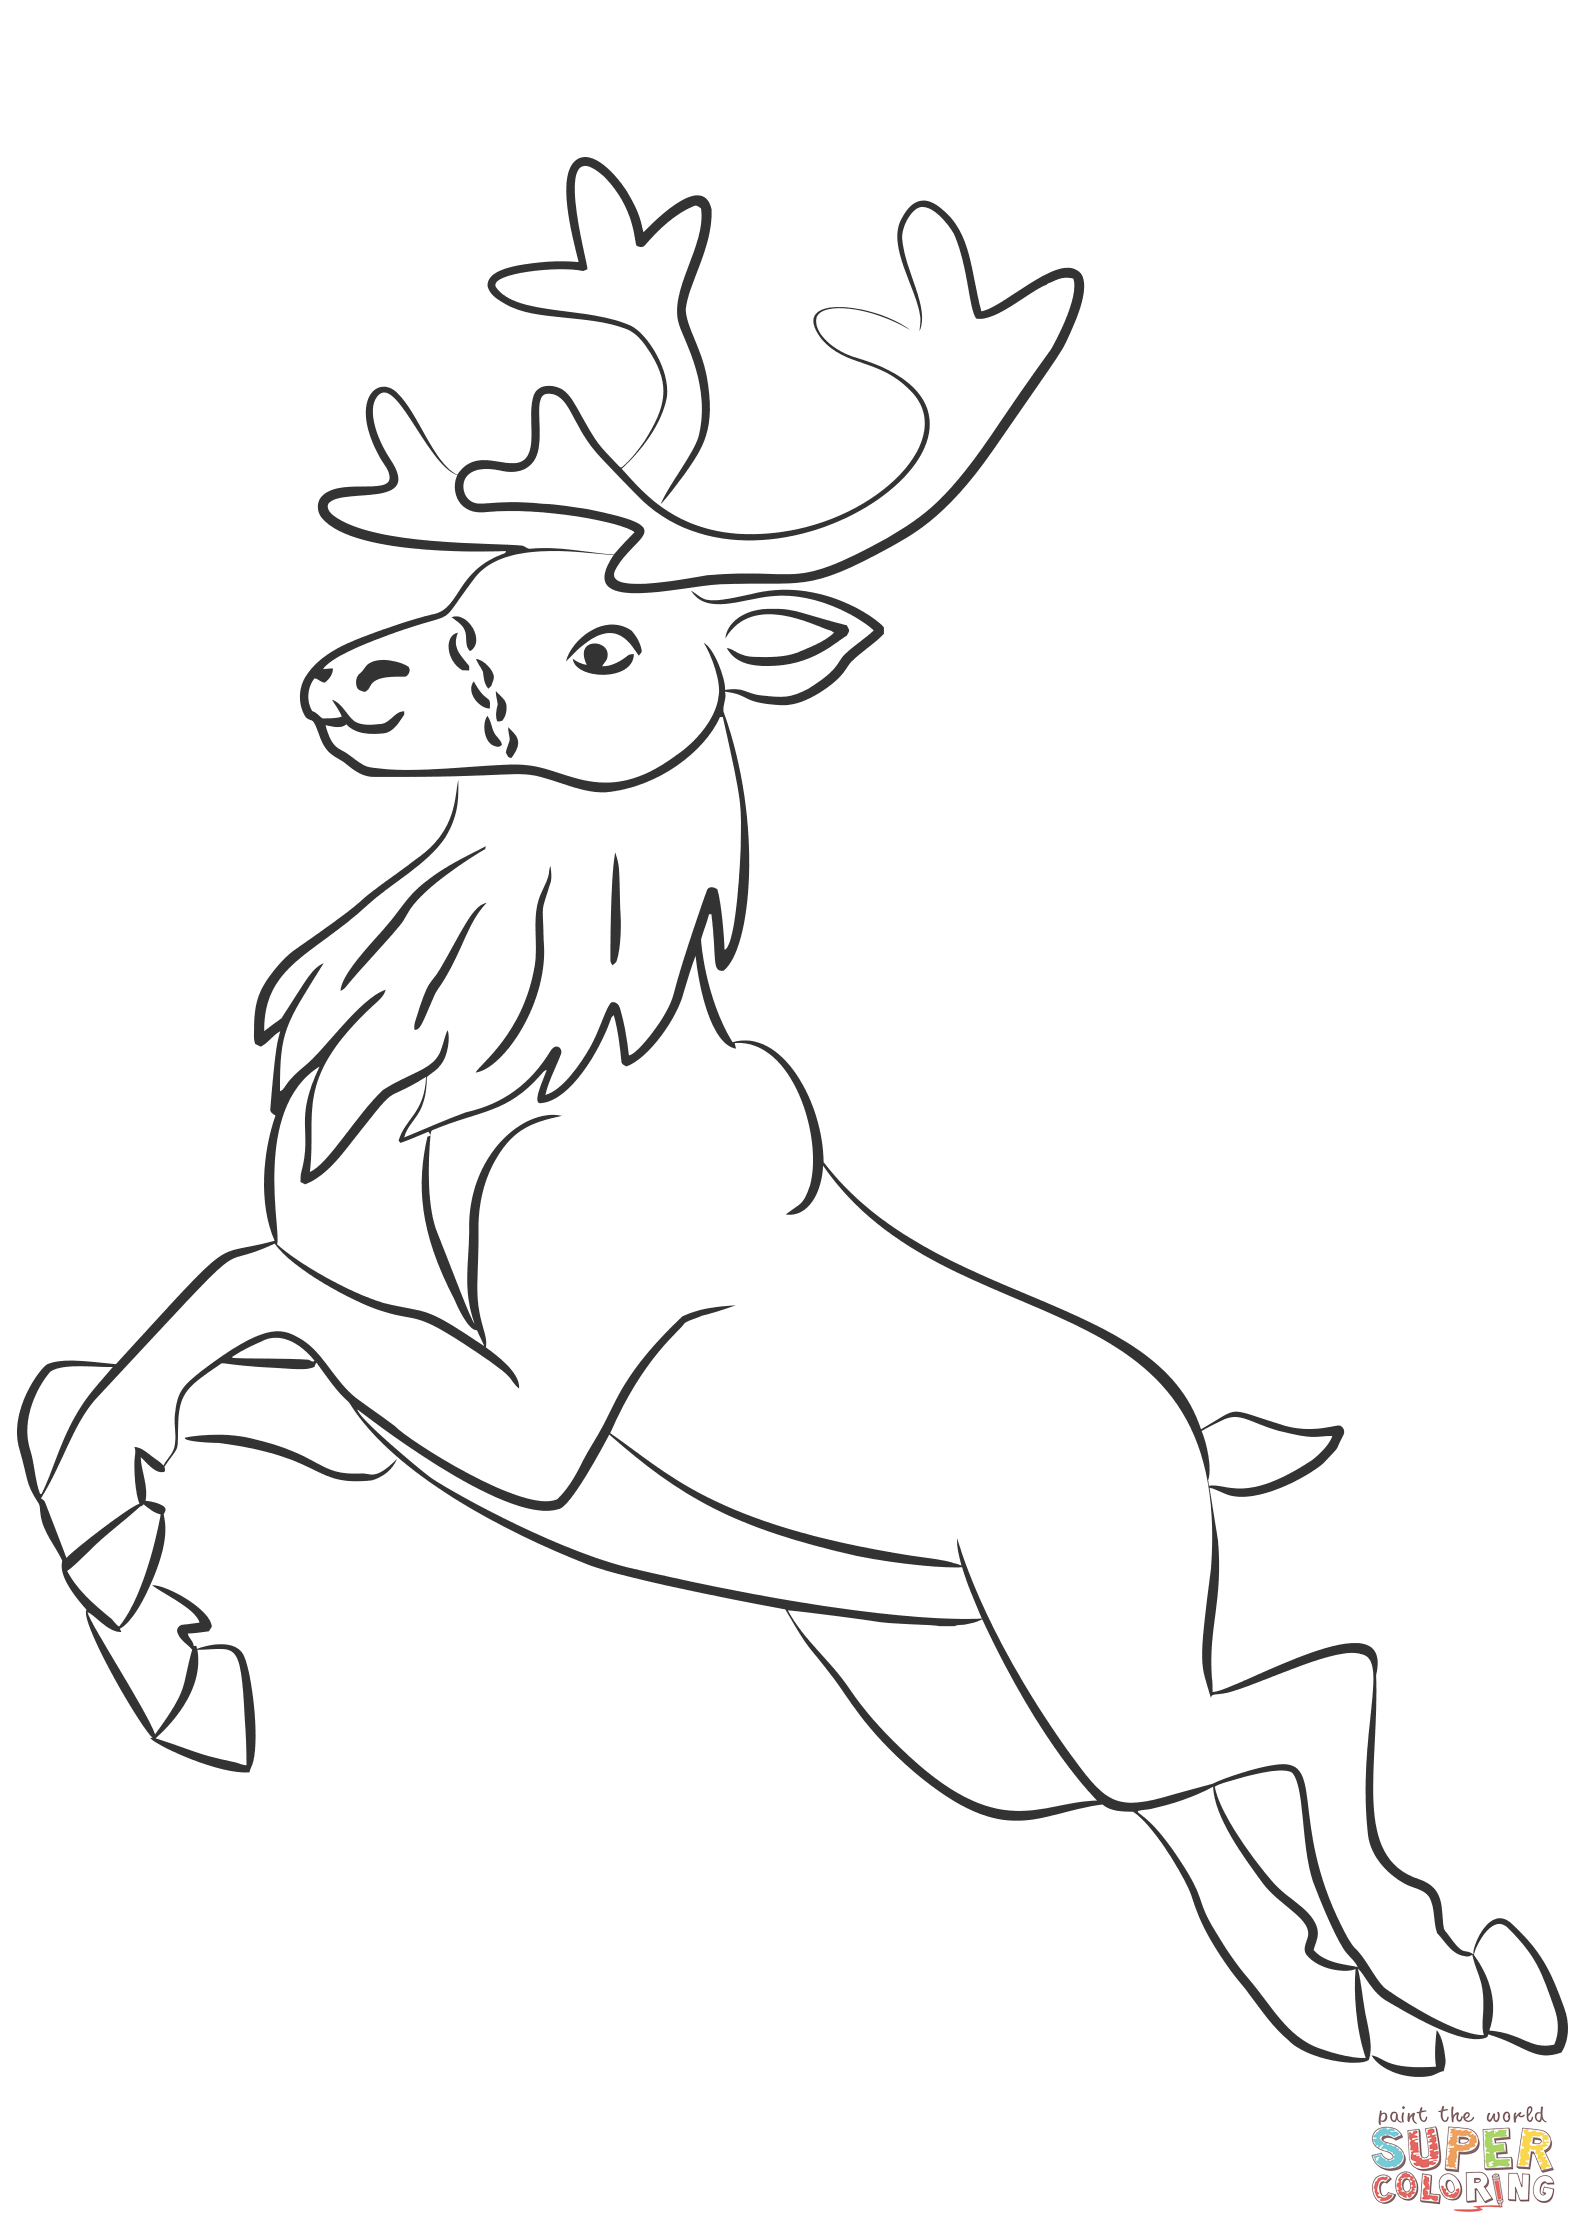 Santa Reindeer Coloring Pages Printable With Claus S Page Free